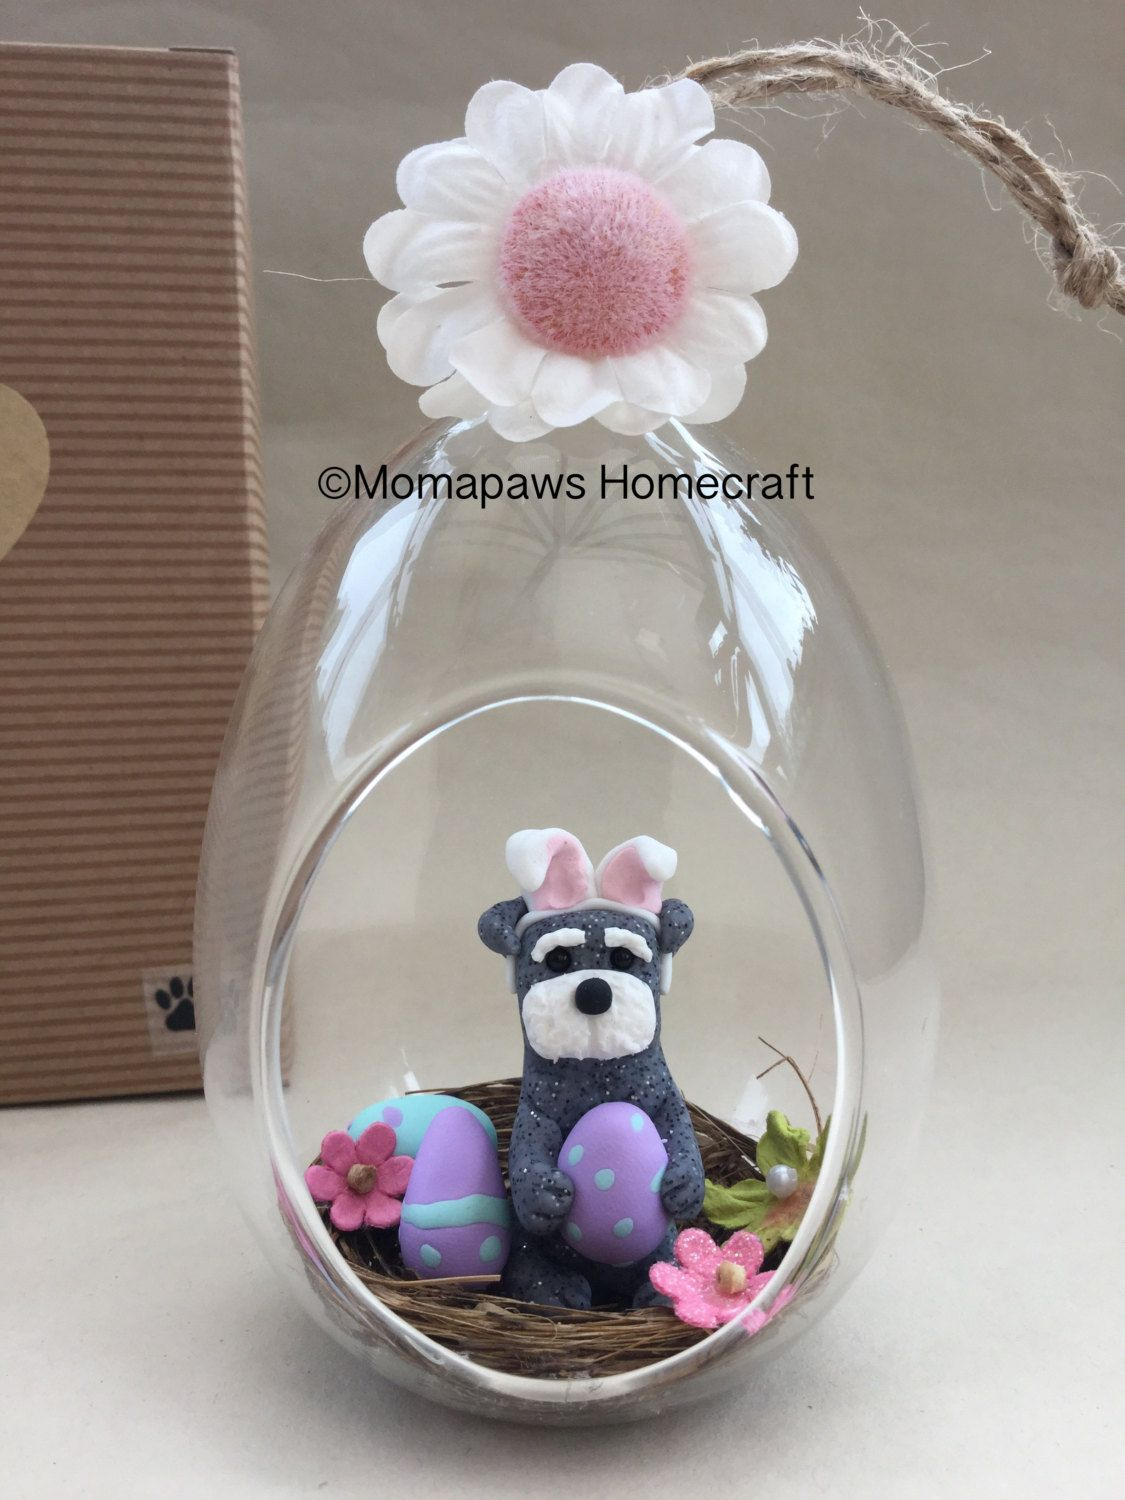 Easter Dog sitting in a nest of eggs little Schnauzer Doggy Bunny inside glass bauble Unique Handmade Ornament unusual OOAK different  gift by MomapawsHomecraft on Etsy